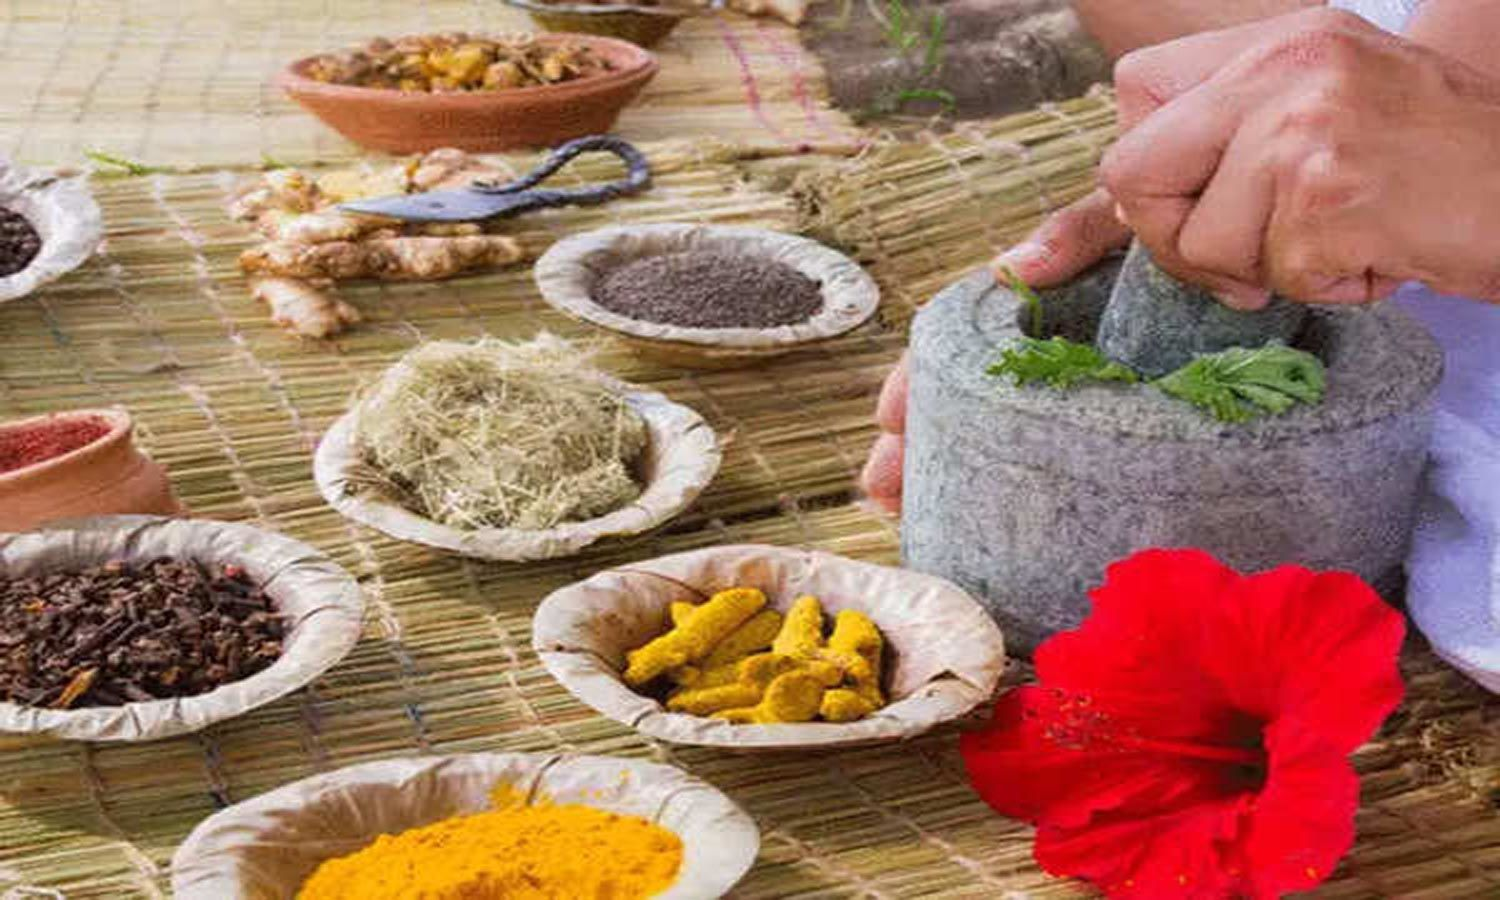 Ayurveda as add-on to standard care in COVID-19: Health, Ayush Minsitries begin research studies